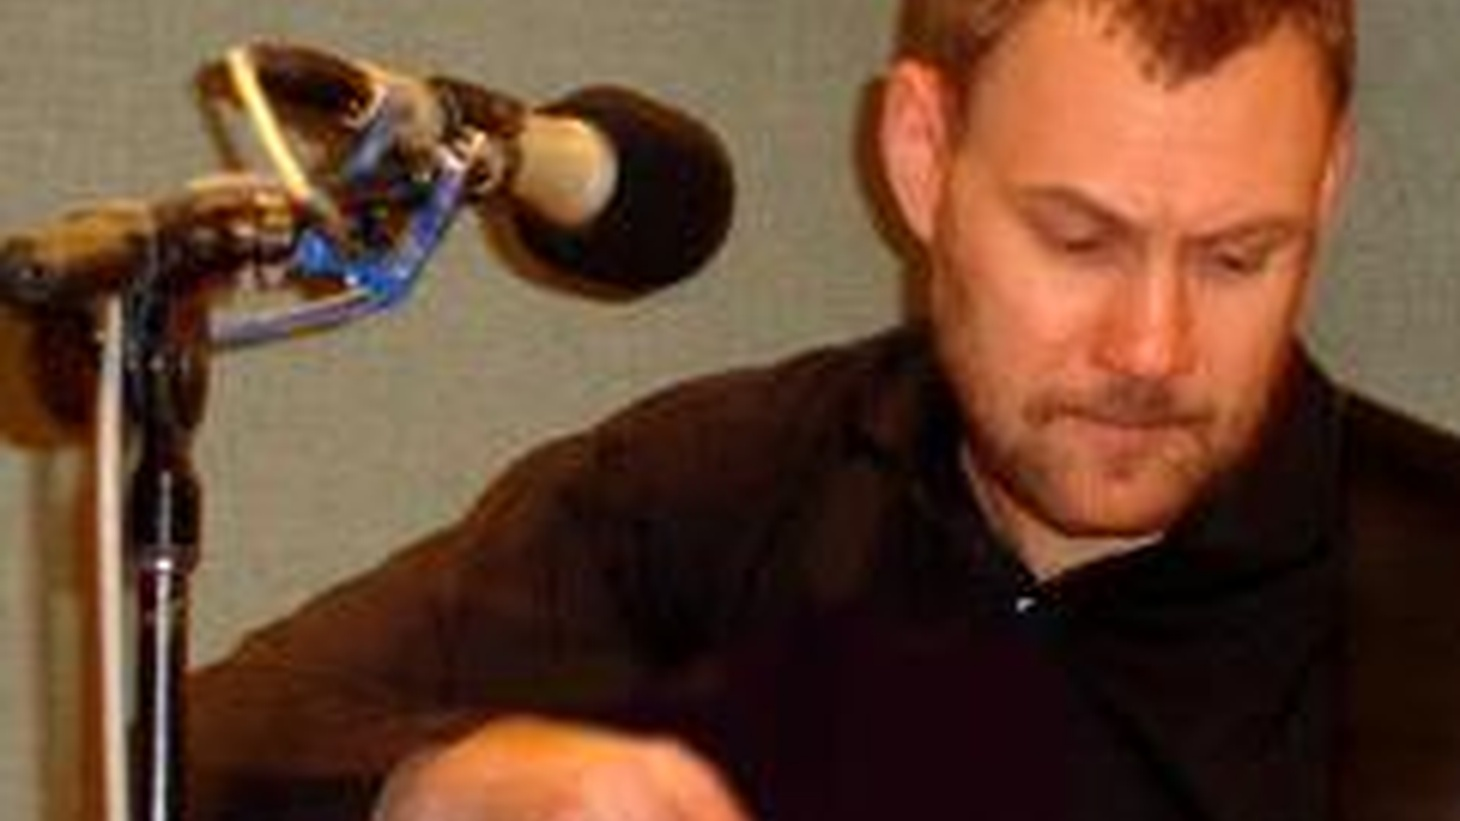 On this edition of Sounds Eclectic, host Nic Harcourt plays new, upcoming and recent releases from Duffy, Gnarls Barkley, and the latest from kd lang. Plus a live in-studio performance from David Gray all this and much more on Sounds Eclectic.